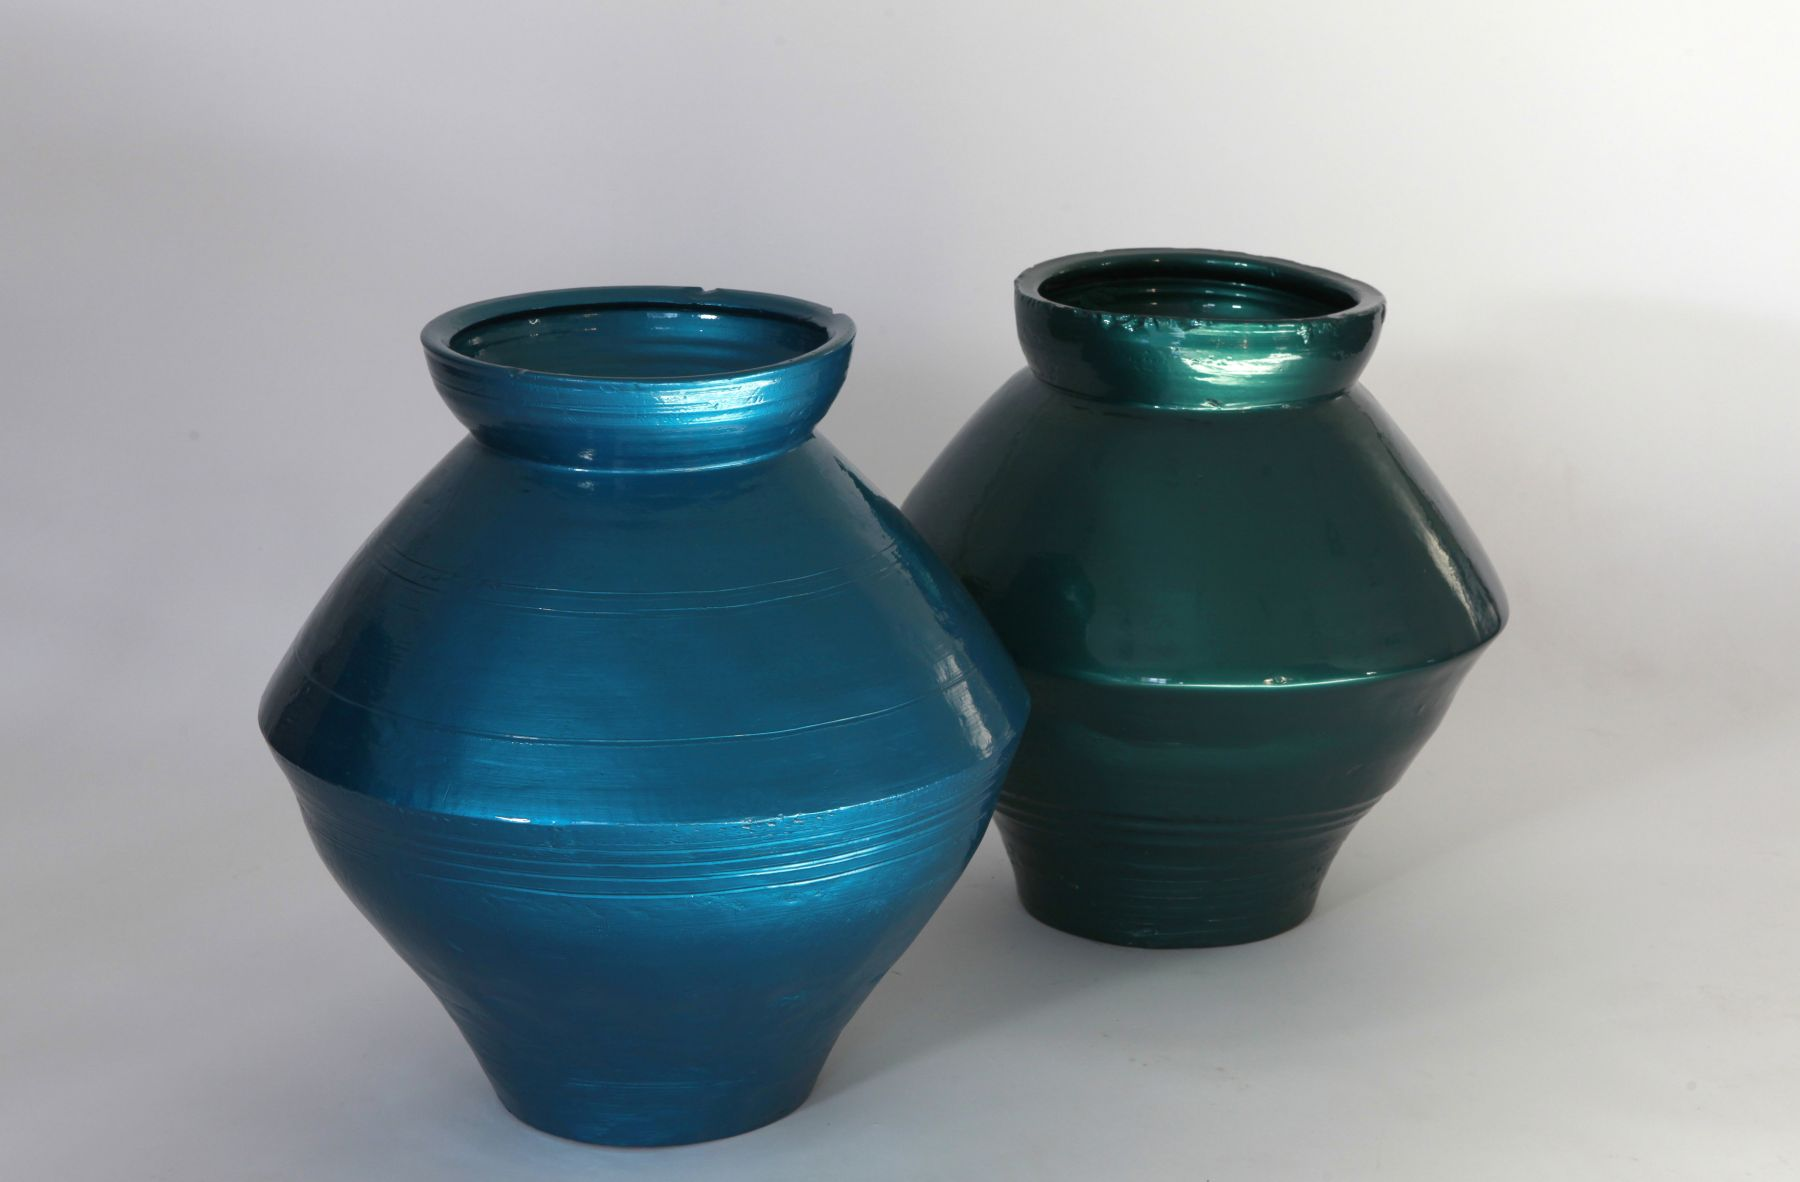 Han Dynasty Vases in Auto Paintå–·æ¼†æ±‰æœé™¶ç½2014Han Dynasty vases and auto paintæ±‰æœé™¶ç½, 汽车油漆Set of two, 20 x 20 x 21 ¼ in and 19 ½ x 19 ½ x 19 ½ in (共2件, 51 x 51 x 54 cm 和 50 x 50 x 50 cm)